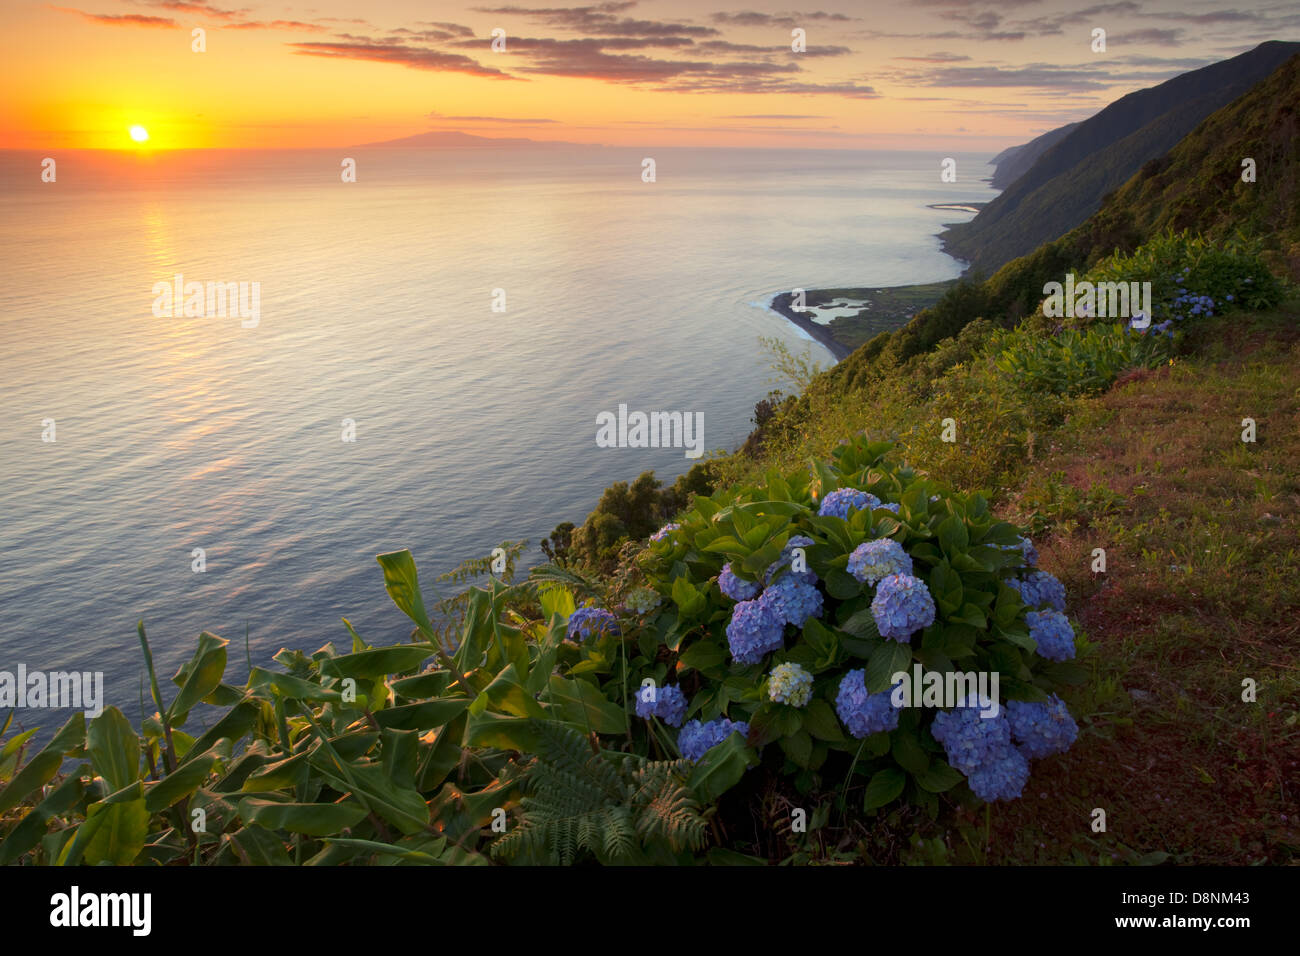 Hydrangeas at sunrise in north coast of São Jorge island with Terceira island at the horizon - Azores - Stock Image